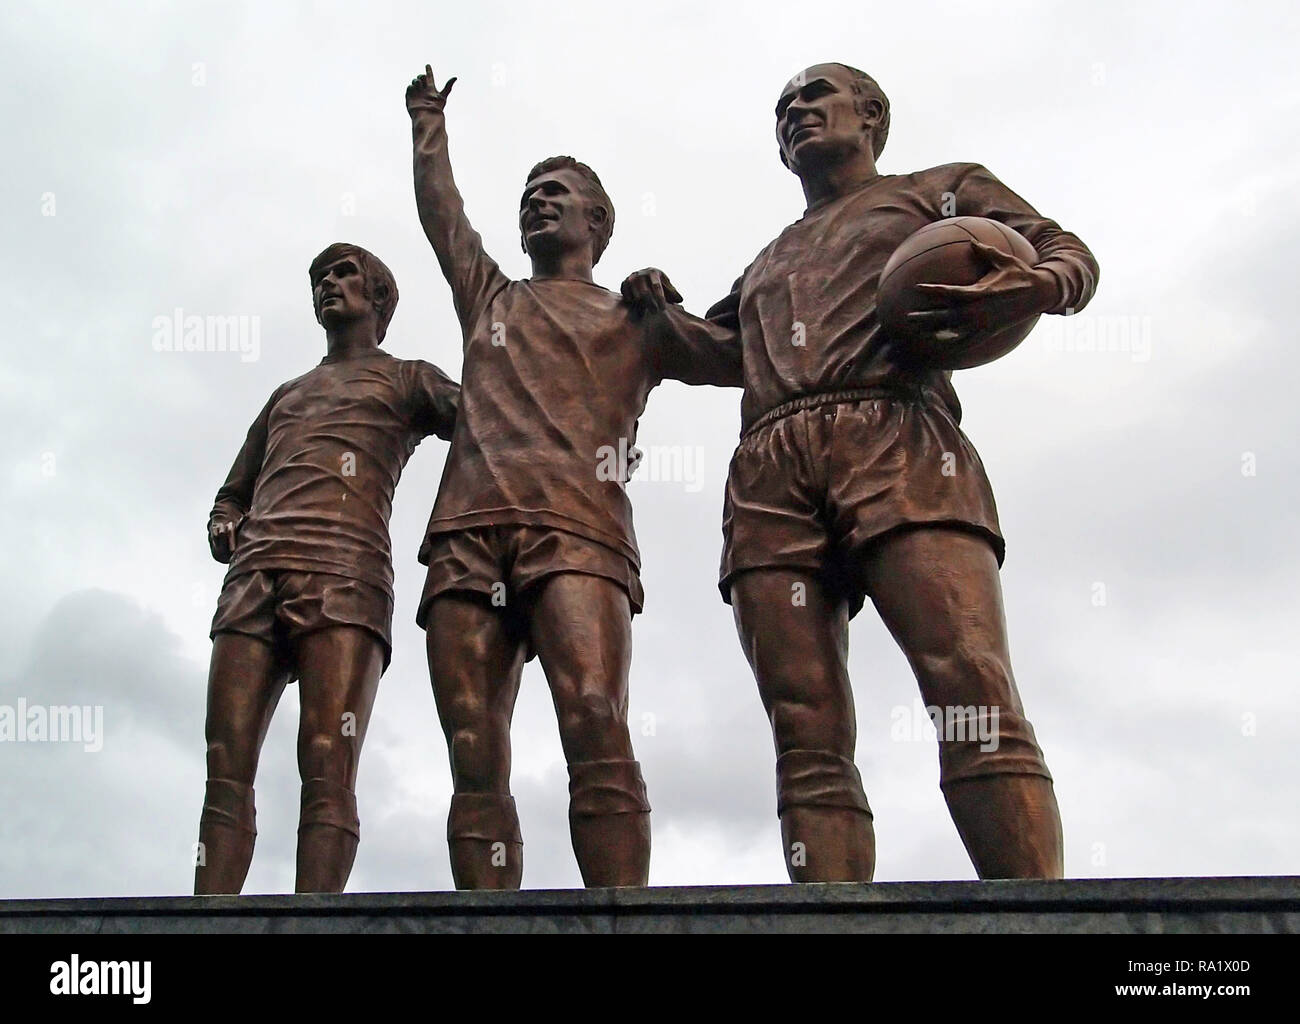 Charlton , Best and Law Statue at Old Trafford. - Stock Image